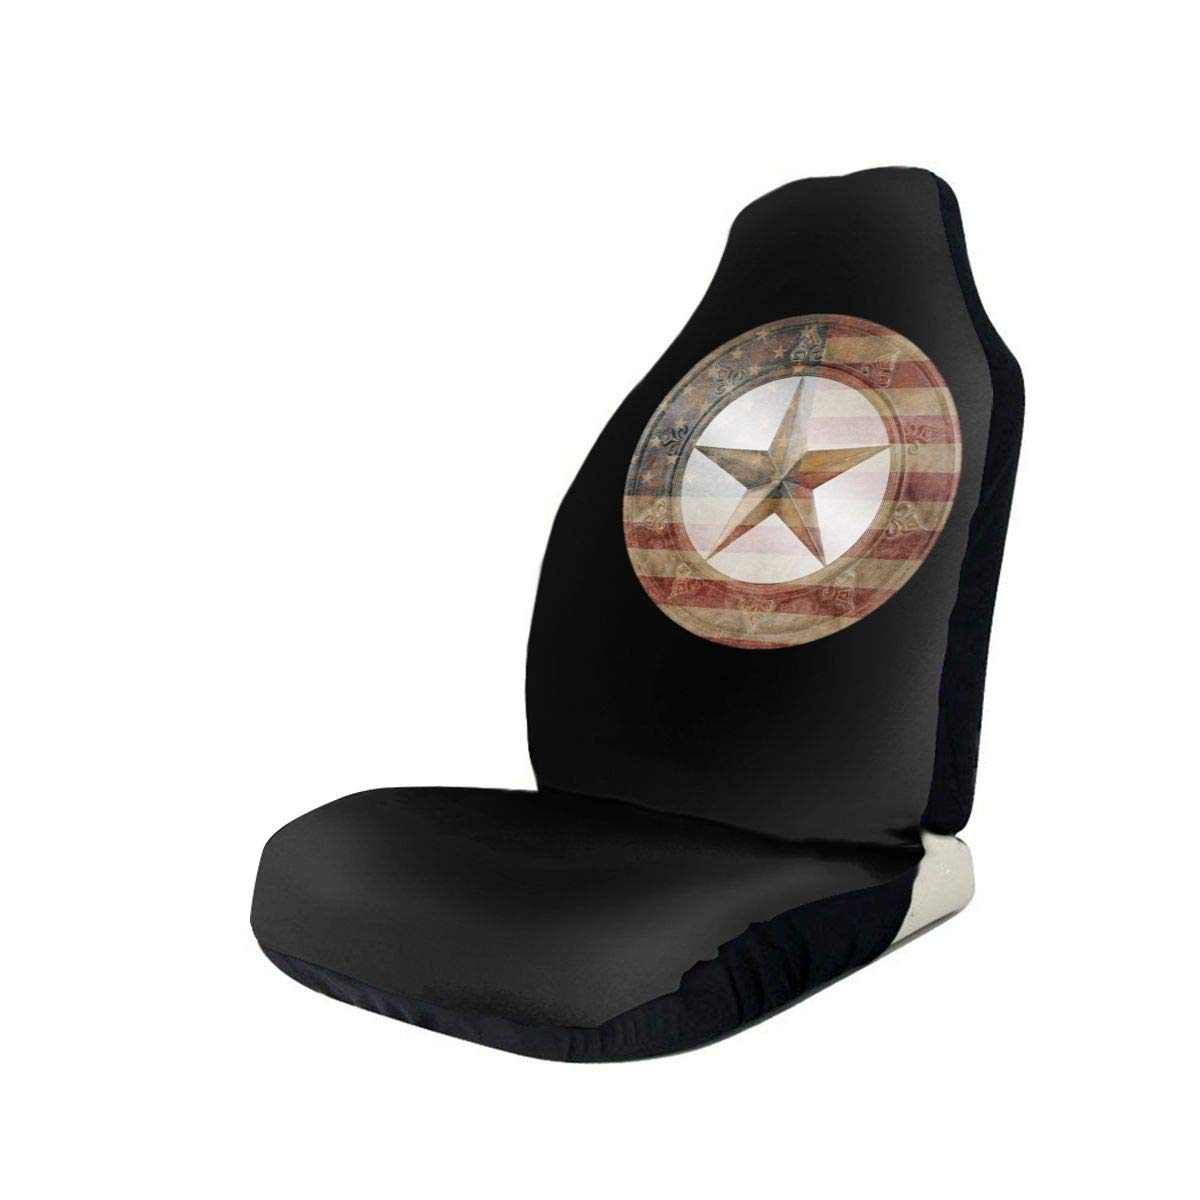 Western Texas Star Anti-Skid and Waterproof Car Seat Covers Protector Fits Most Cars, Auto SUVs Trucks